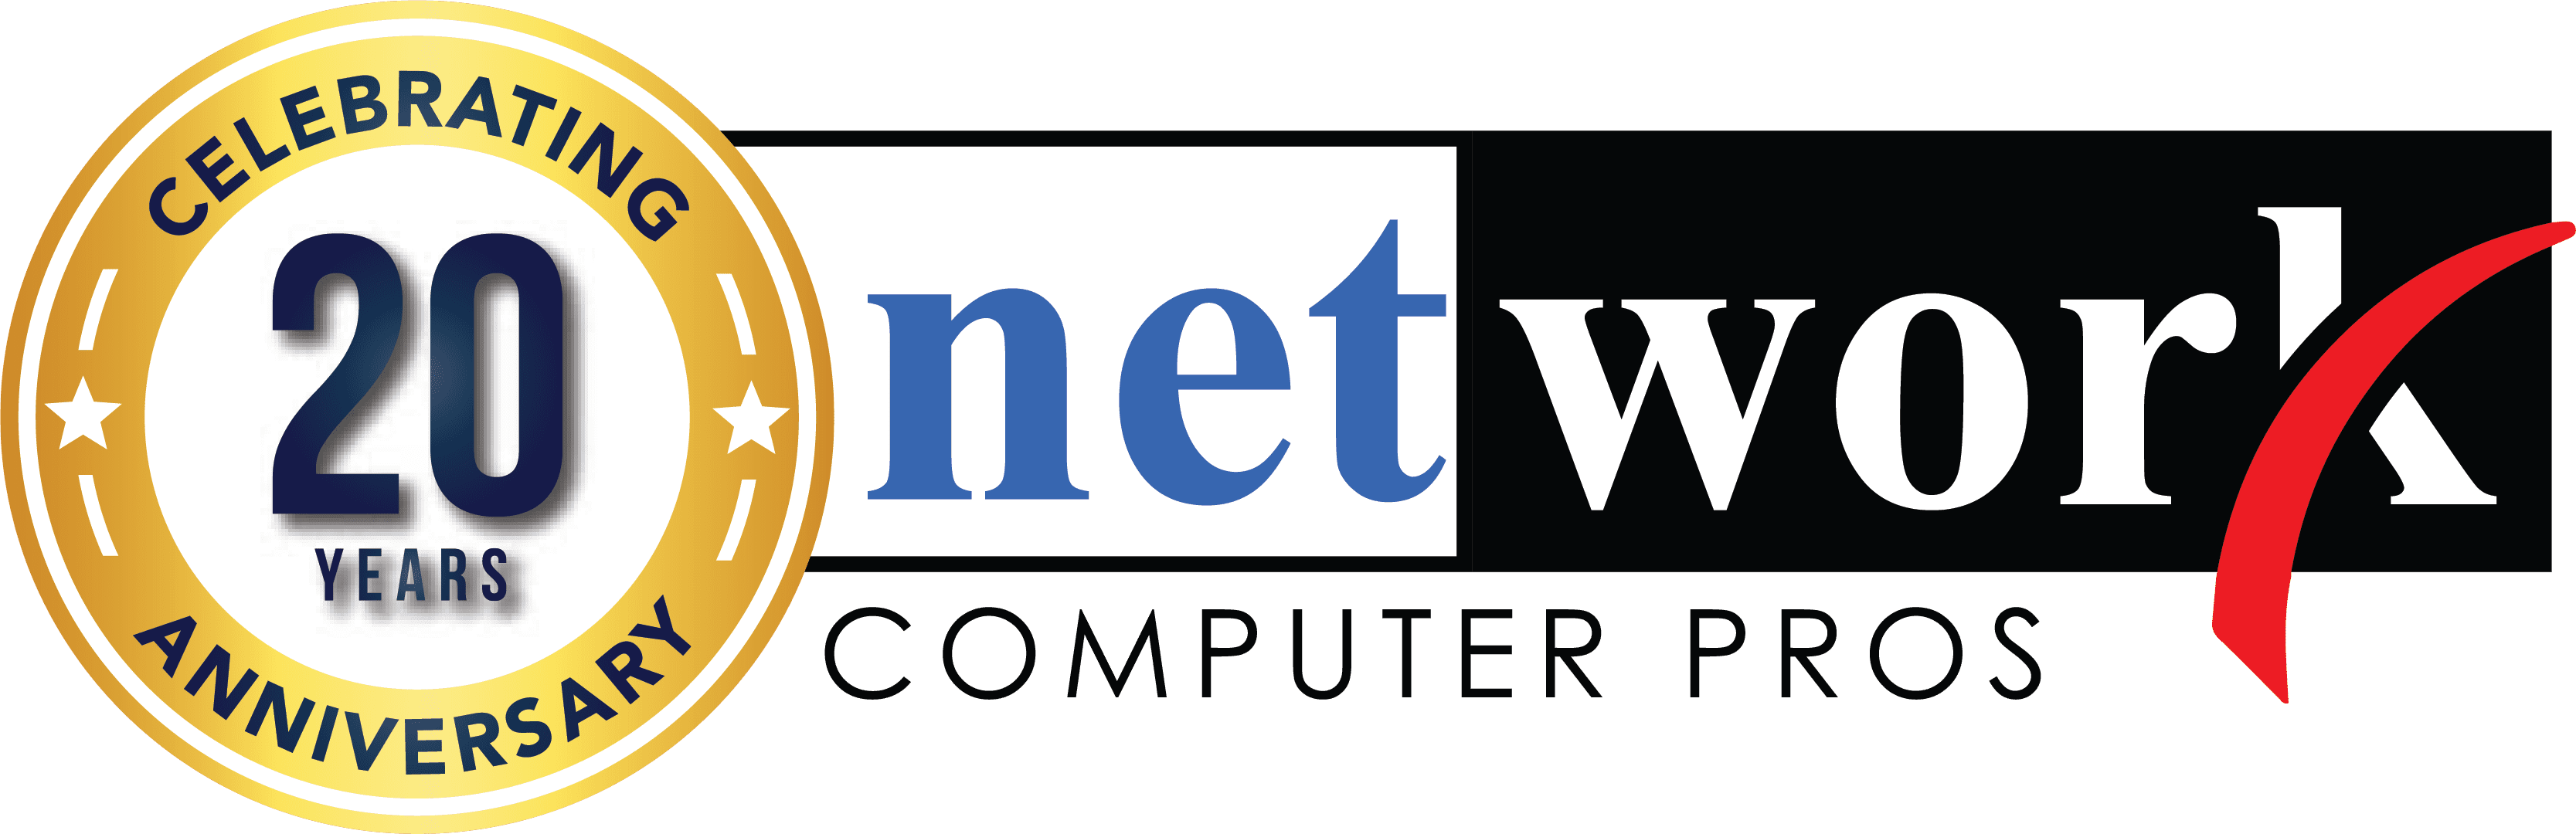 Network Computer Pros